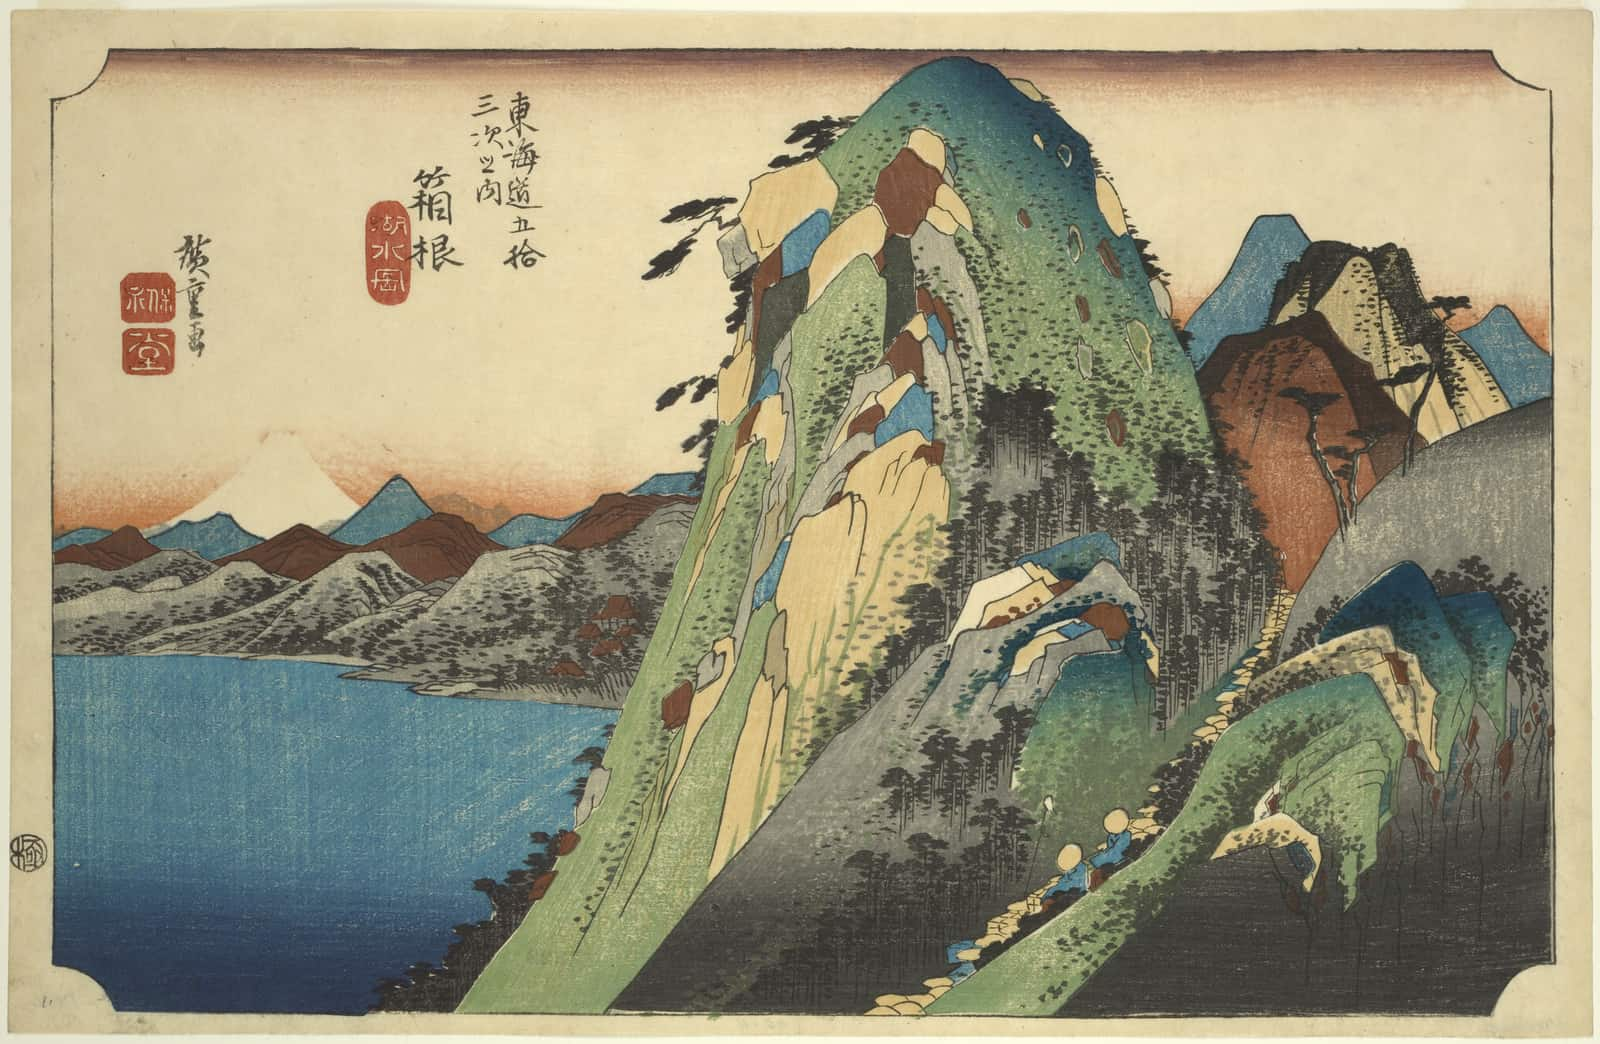 About Hiroshige